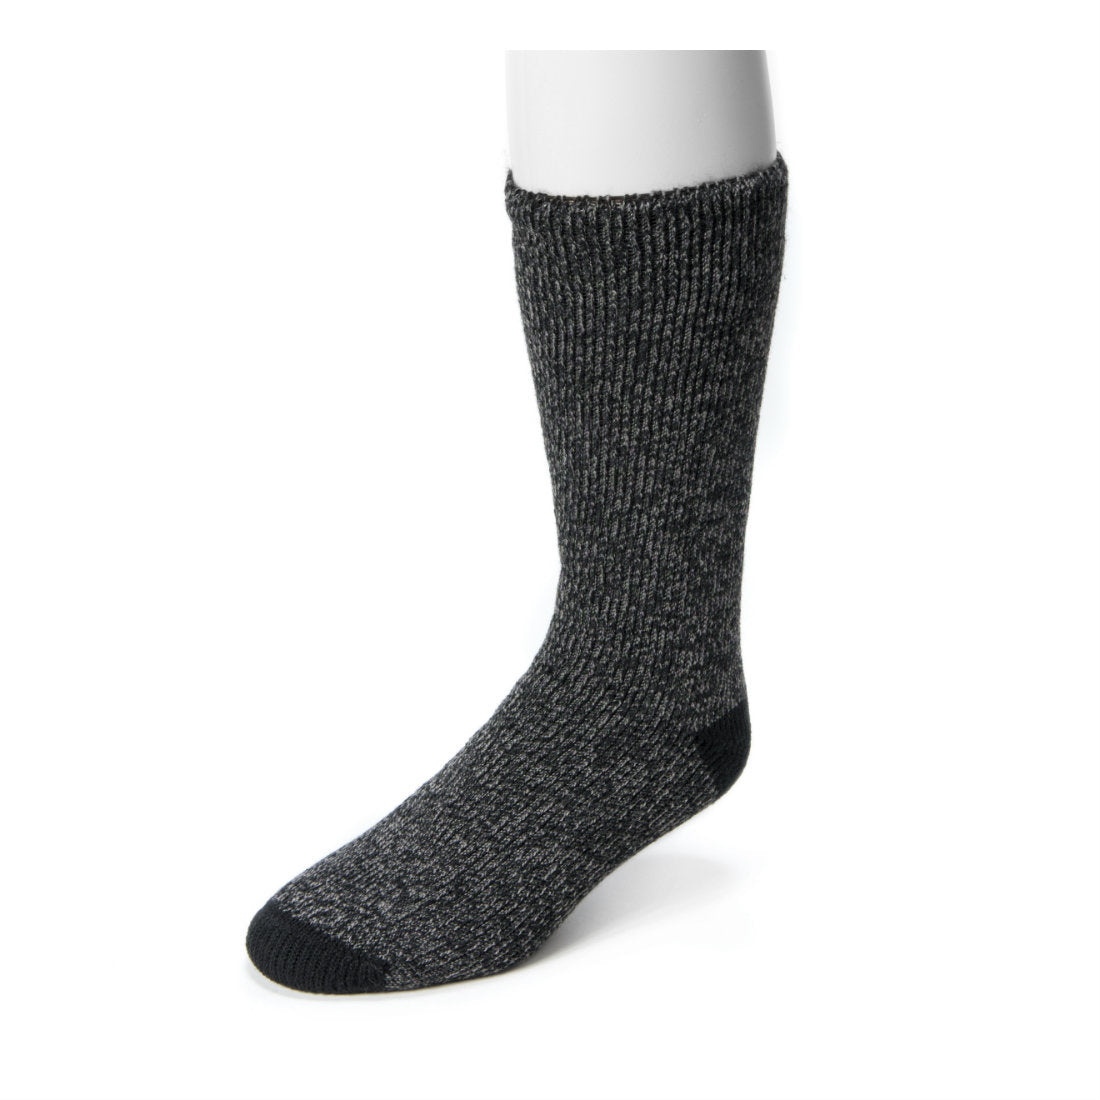 Muk Luks Thermal Boot Socks Black Size 10 - 13